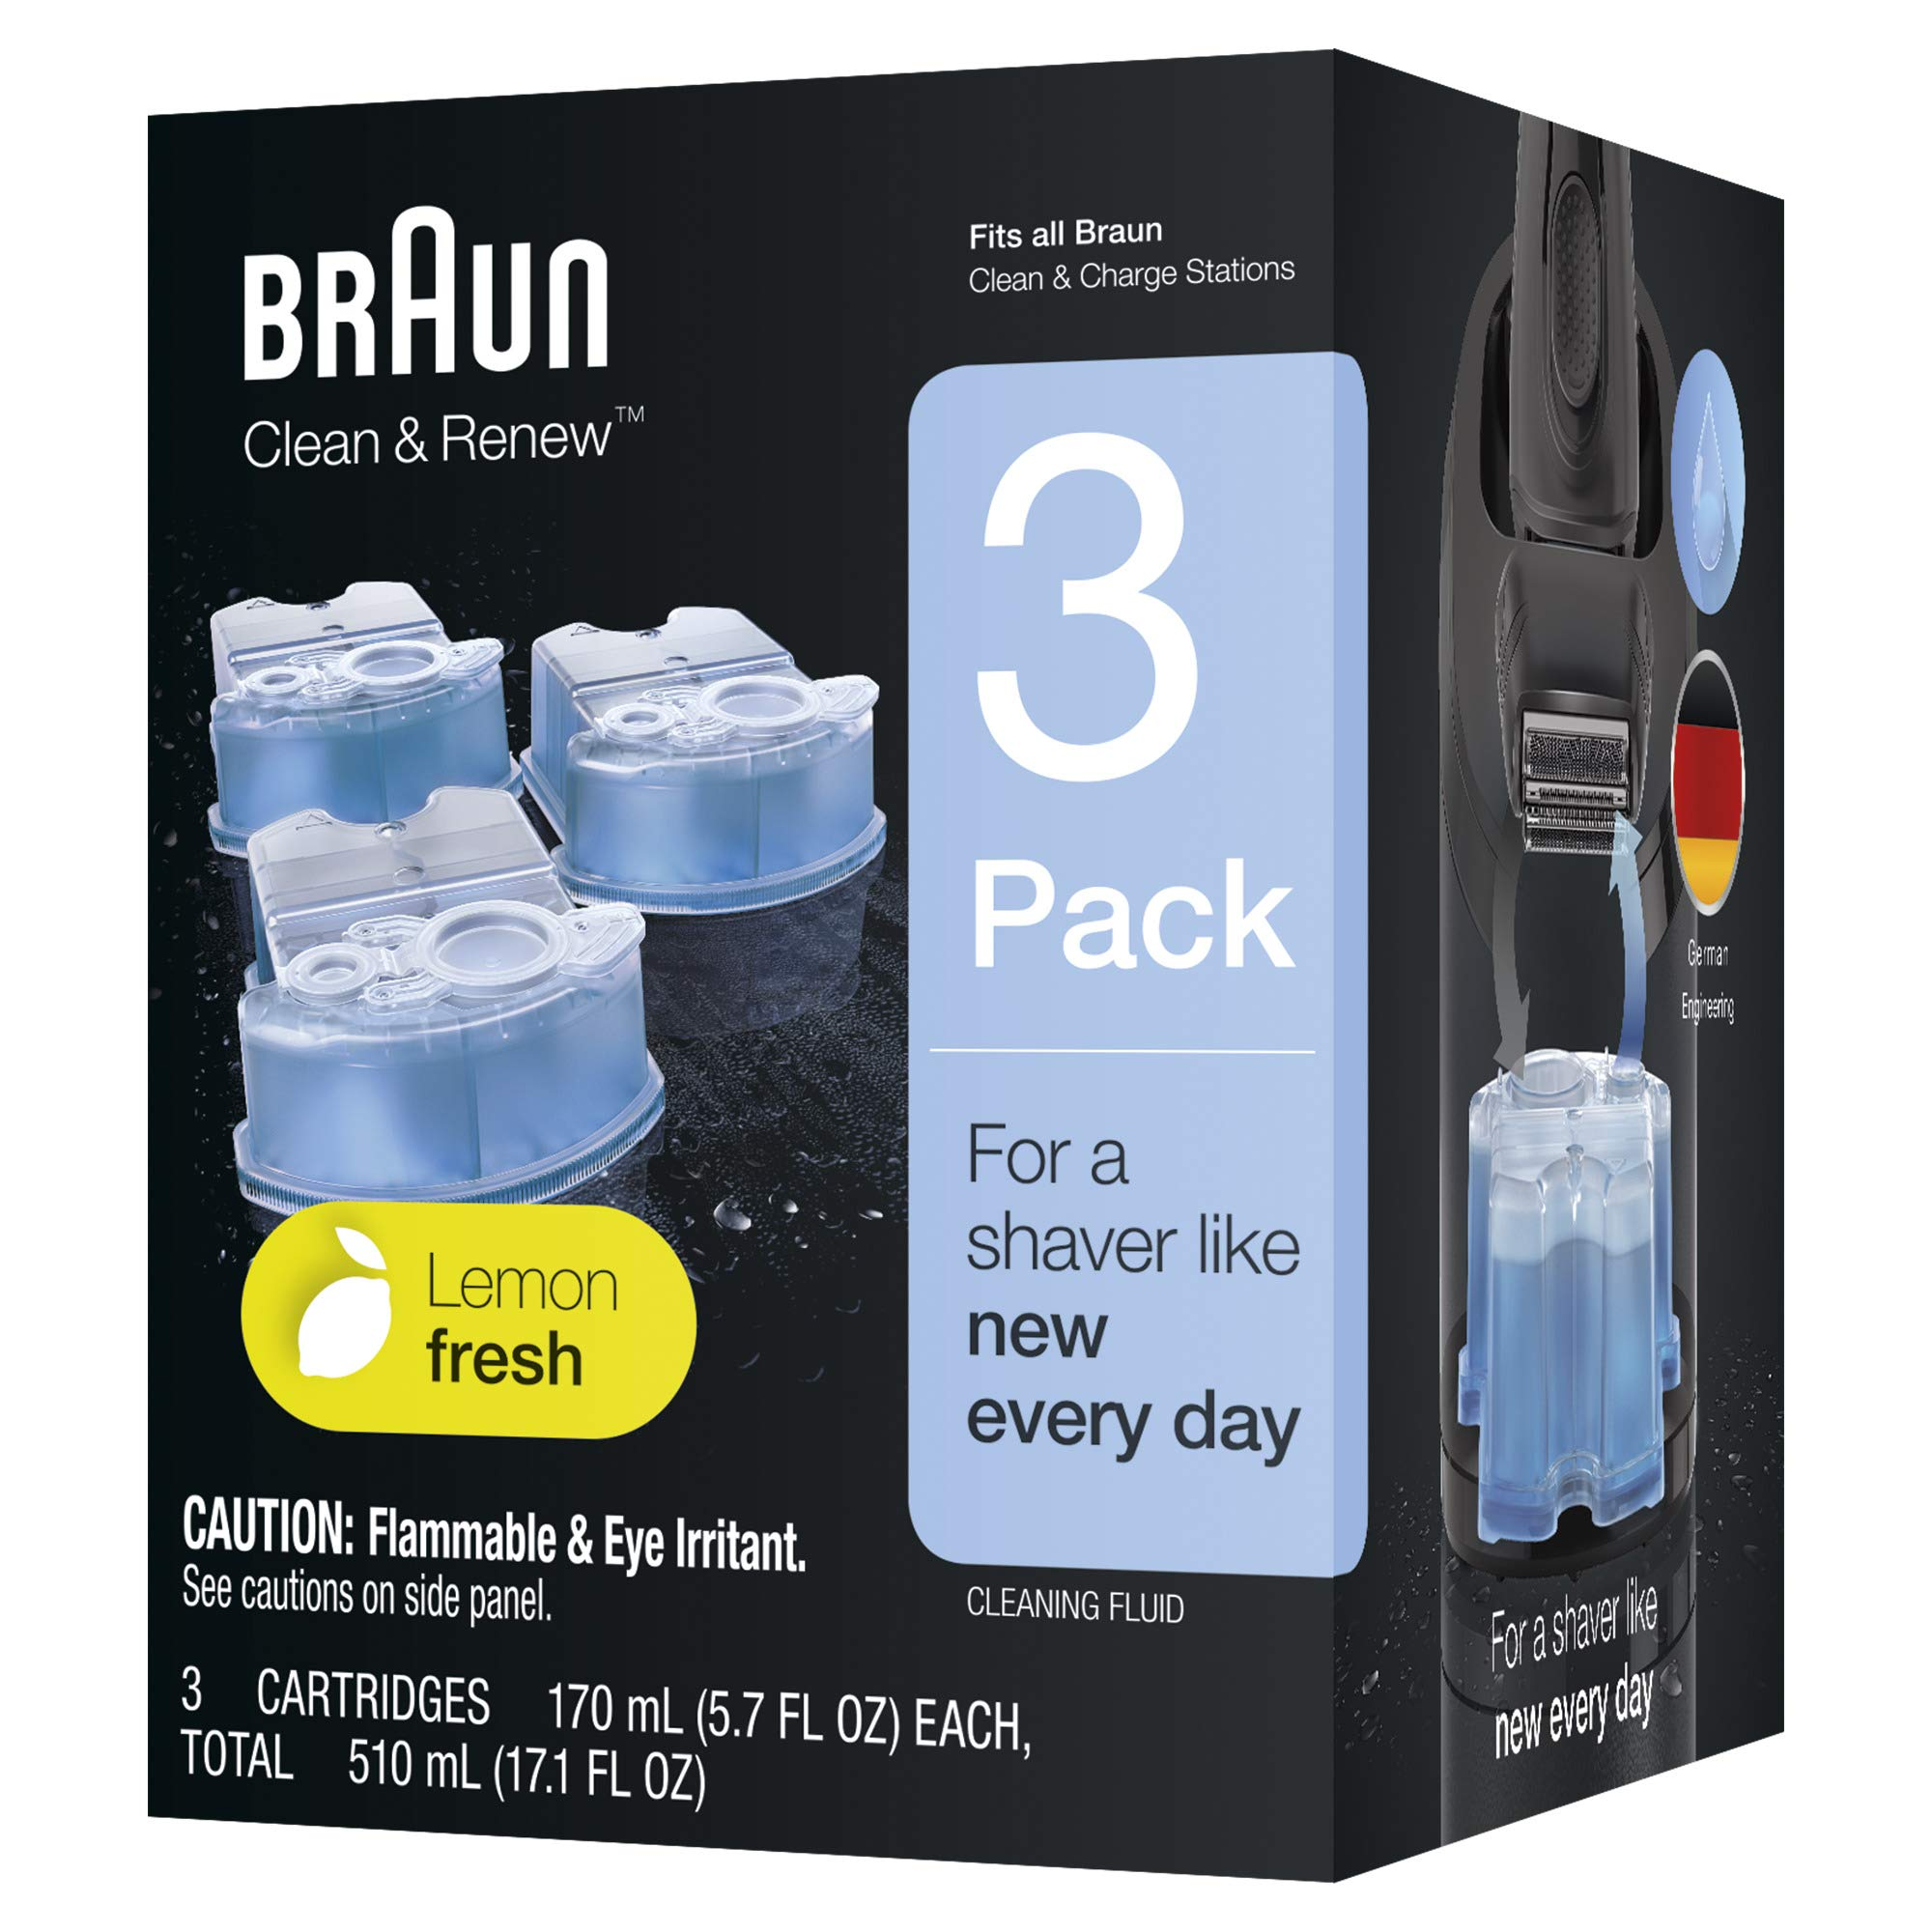 Braun Clean and Renew Refill, 3 Count (Transparent) product image